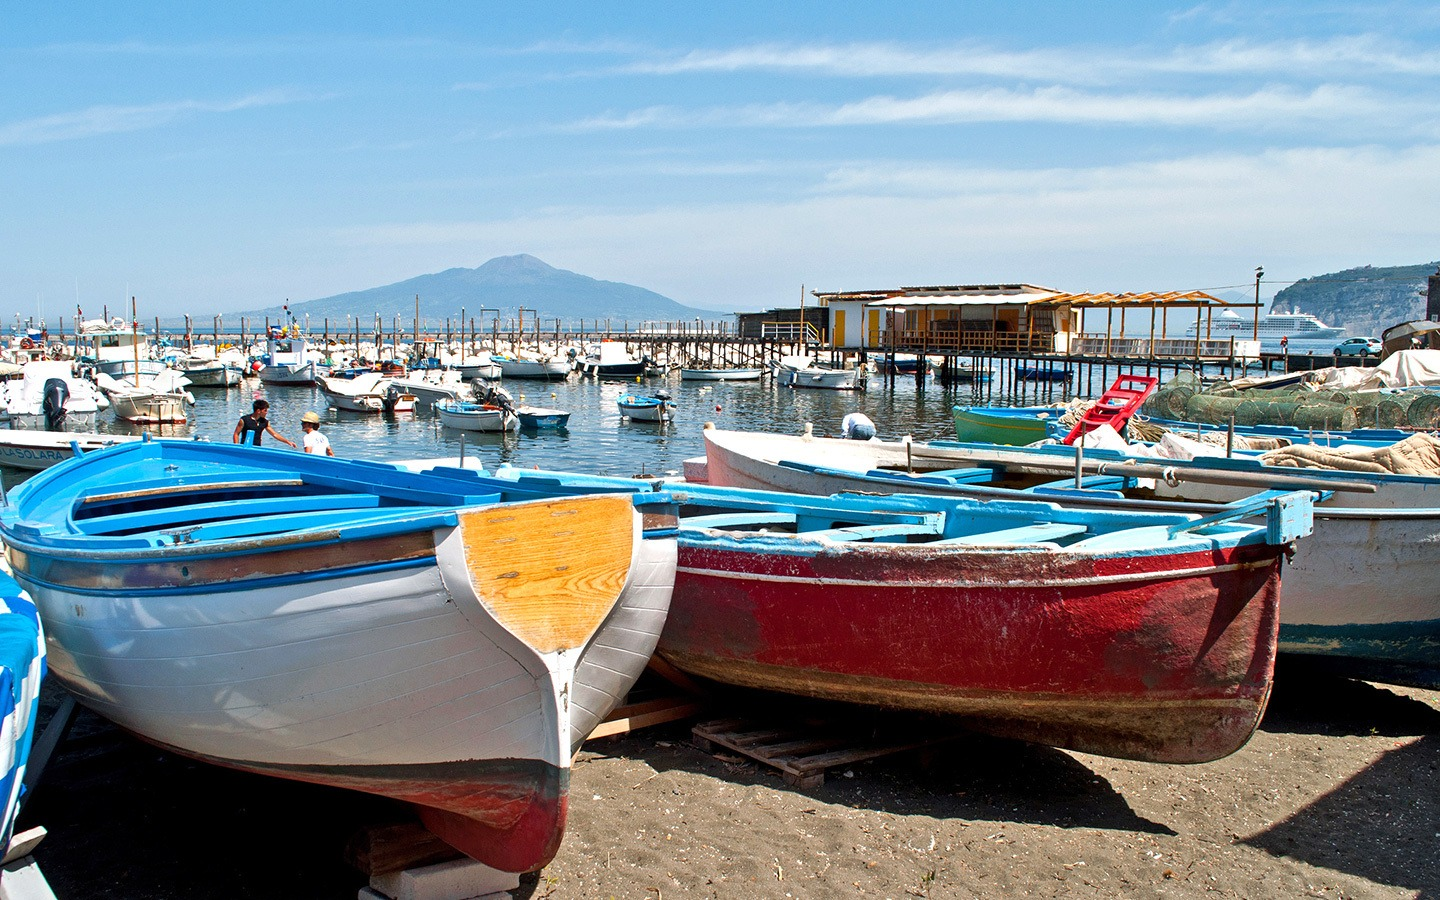 Boats in the harbour at Marina Grande, Sorrento, Italy